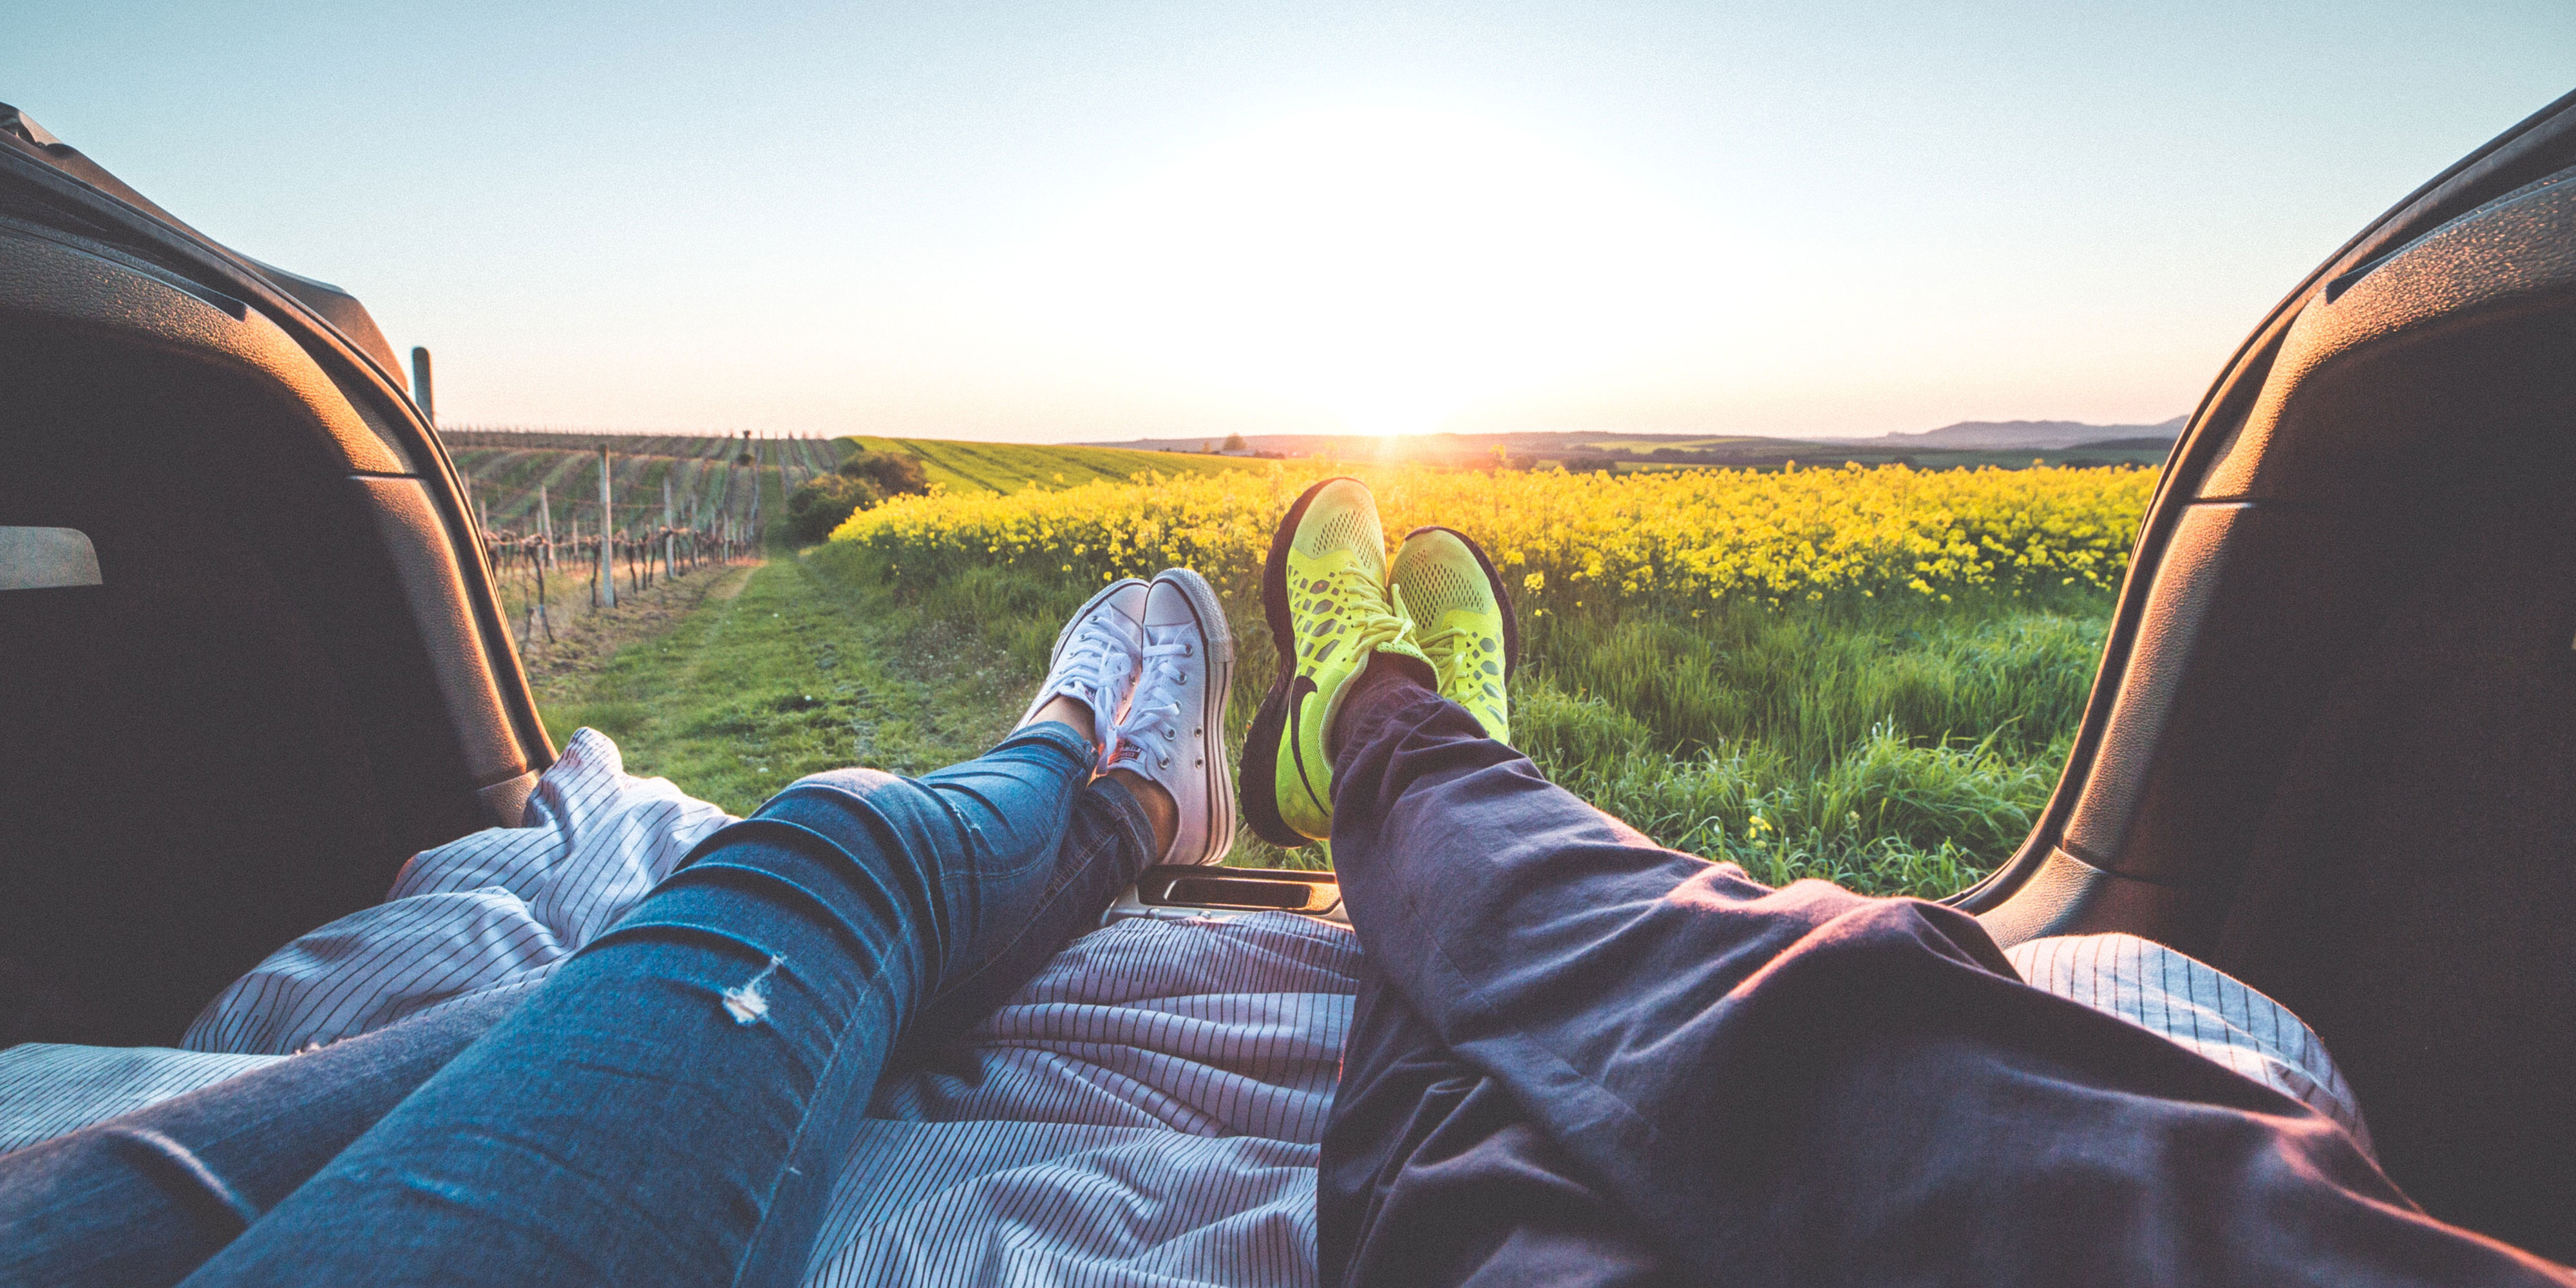 Couple's legs in jeans and sneakers outstretched in back of car looking out at a field of yellow flowers.